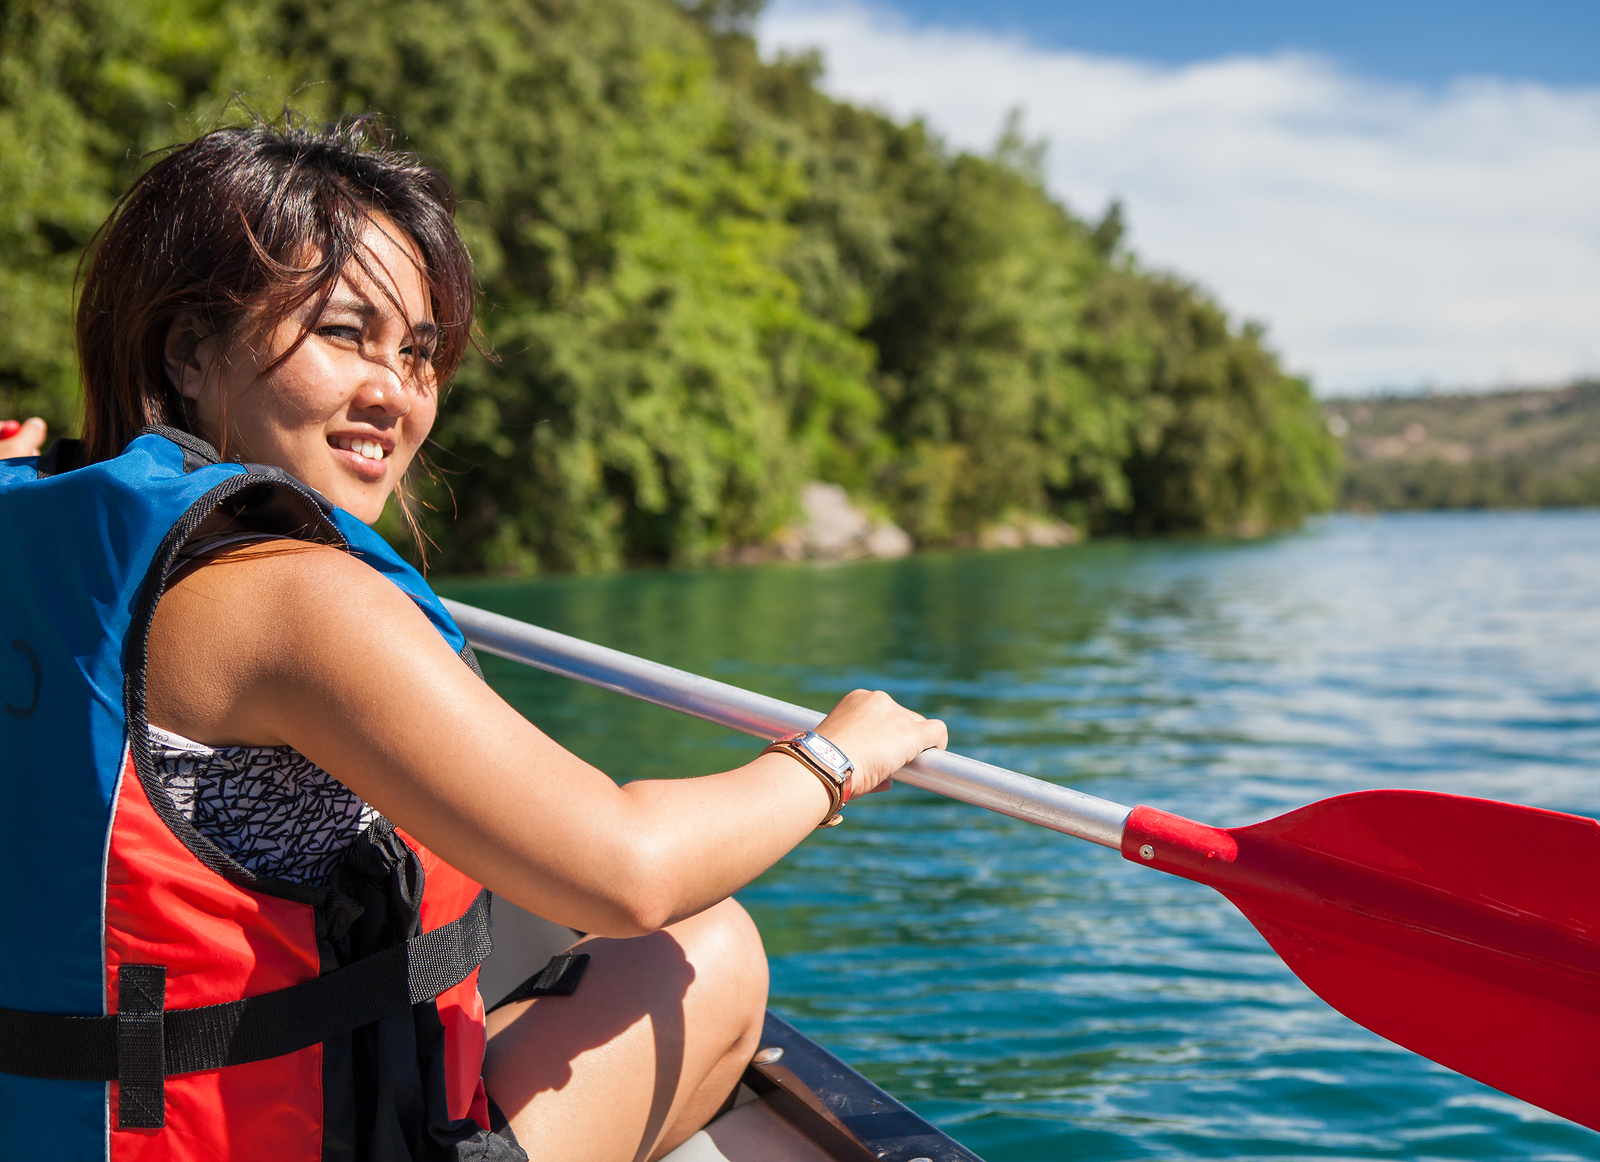 bigstock-Pretty-young-woman-on-a-canoe-44361796.jpg